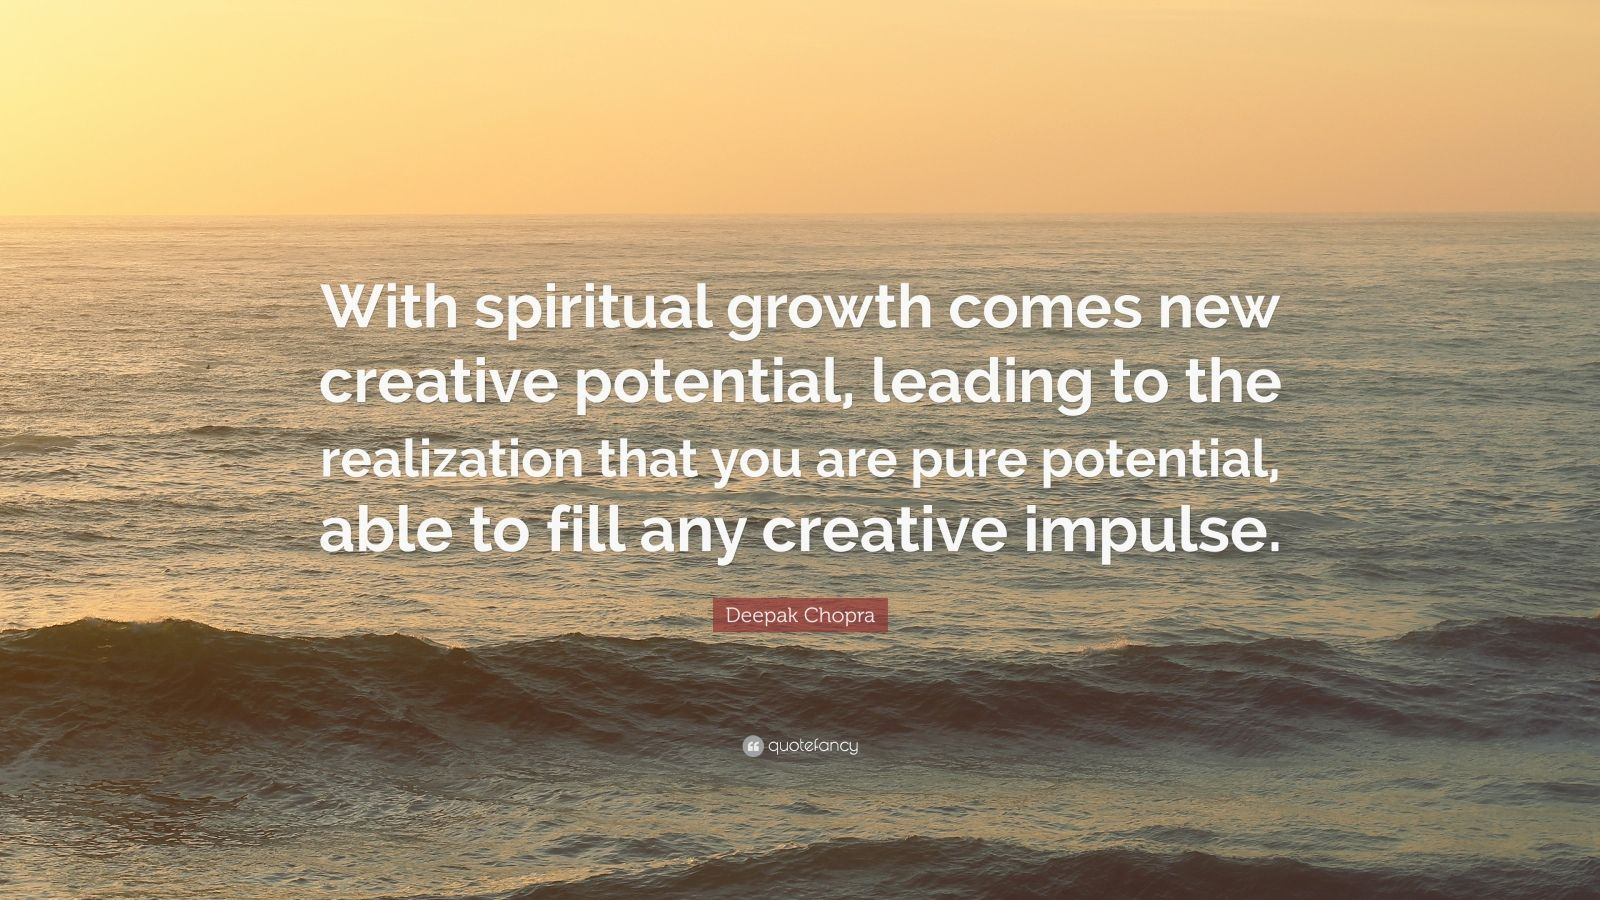 """Deepak Chopra Quote: """"With spiritual growth comes new creative potential, leading to the realization that you are pure potential, able to fill any creative impulse."""""""